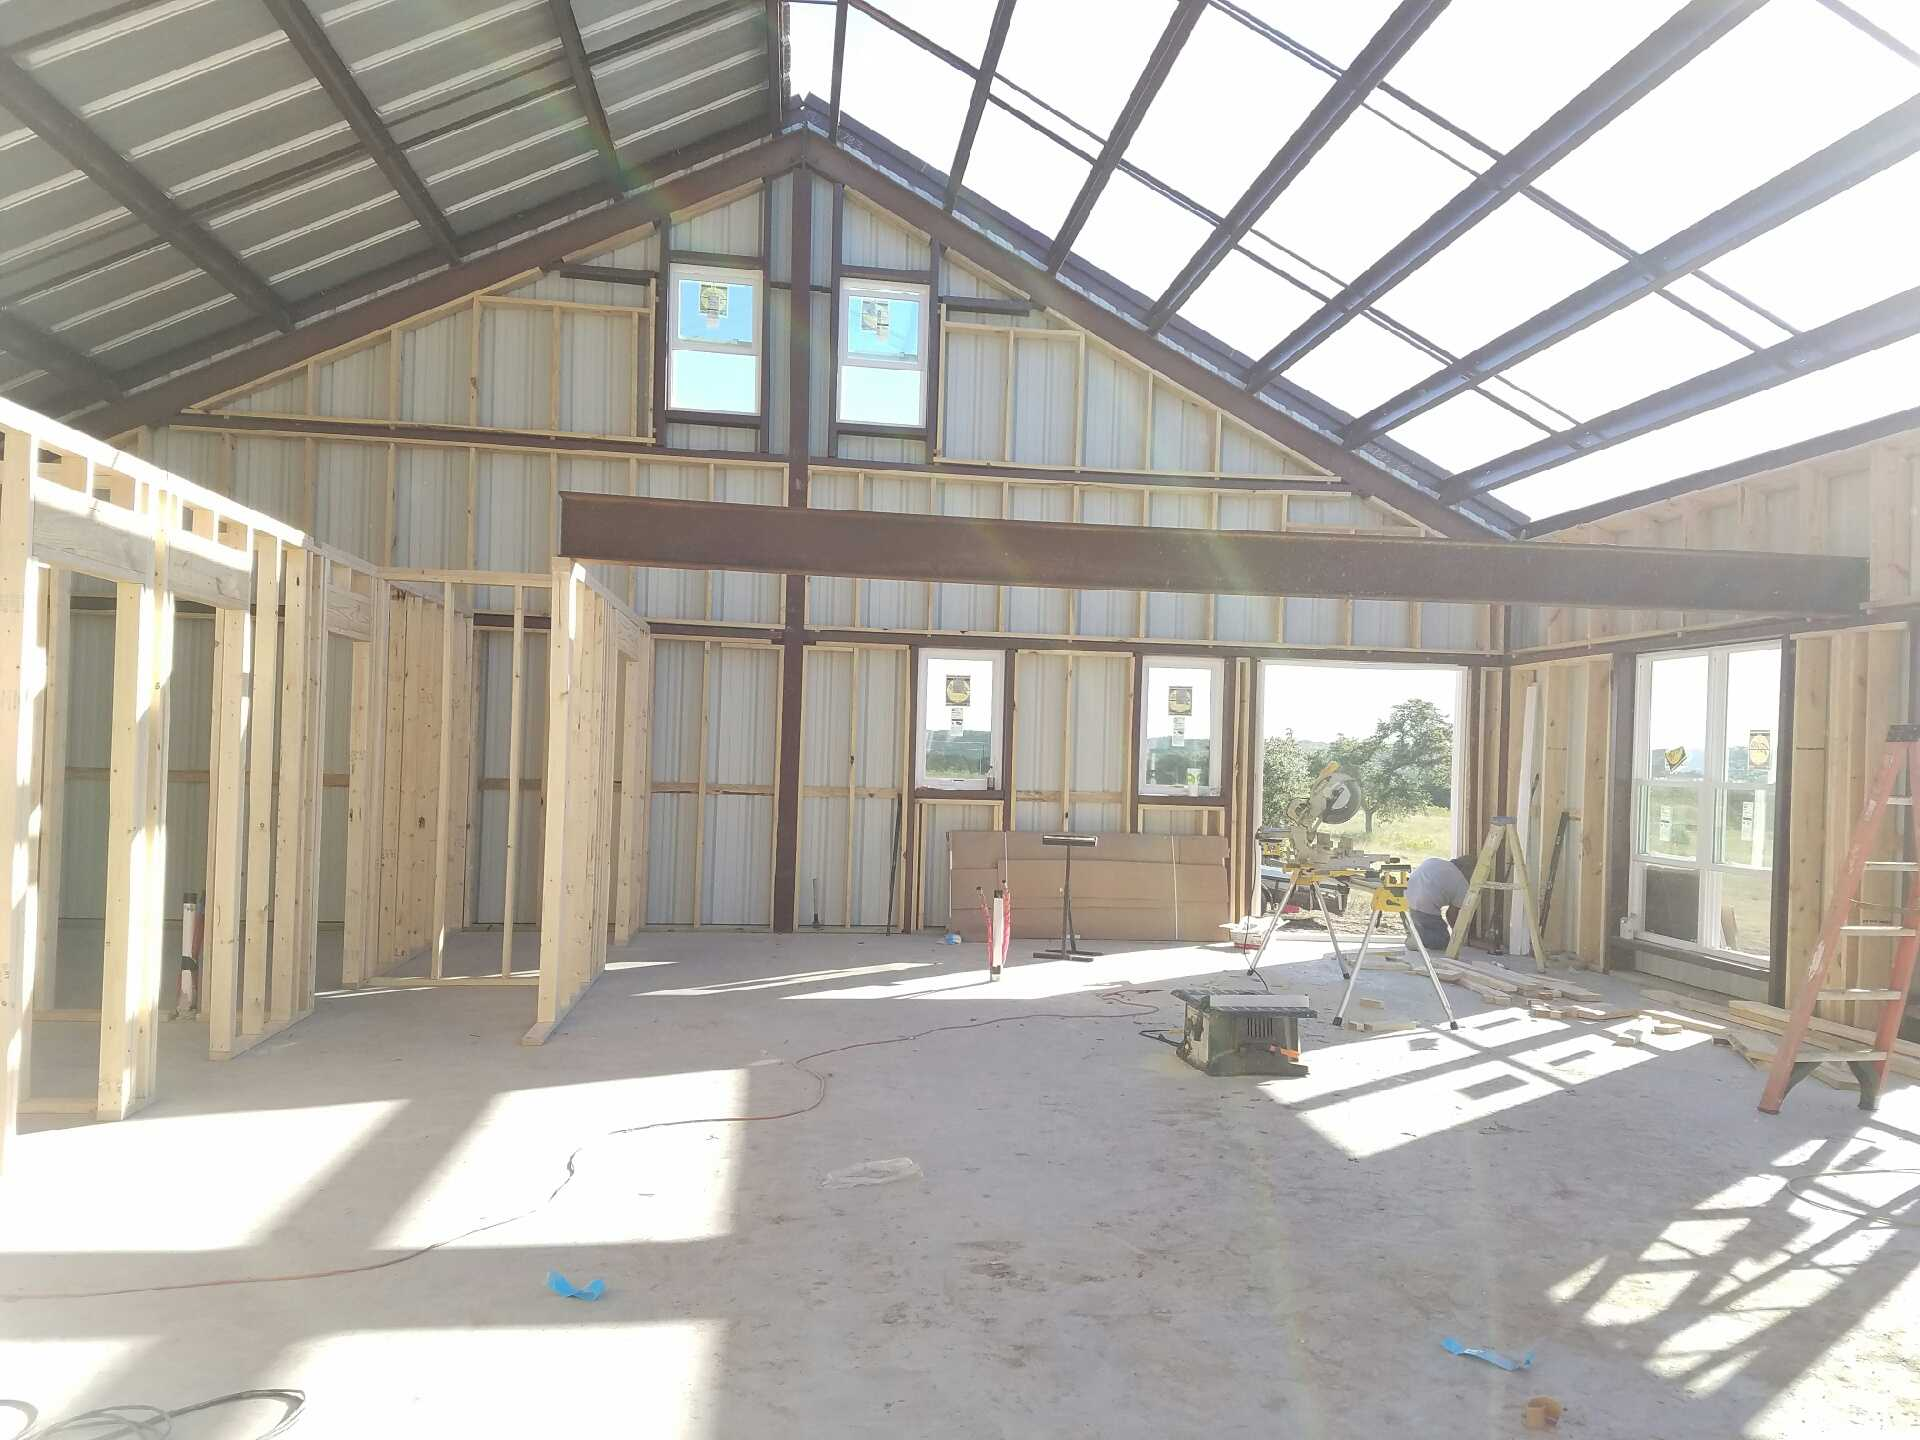 40x60 Steel Building Workshop located in Cleburne, TX